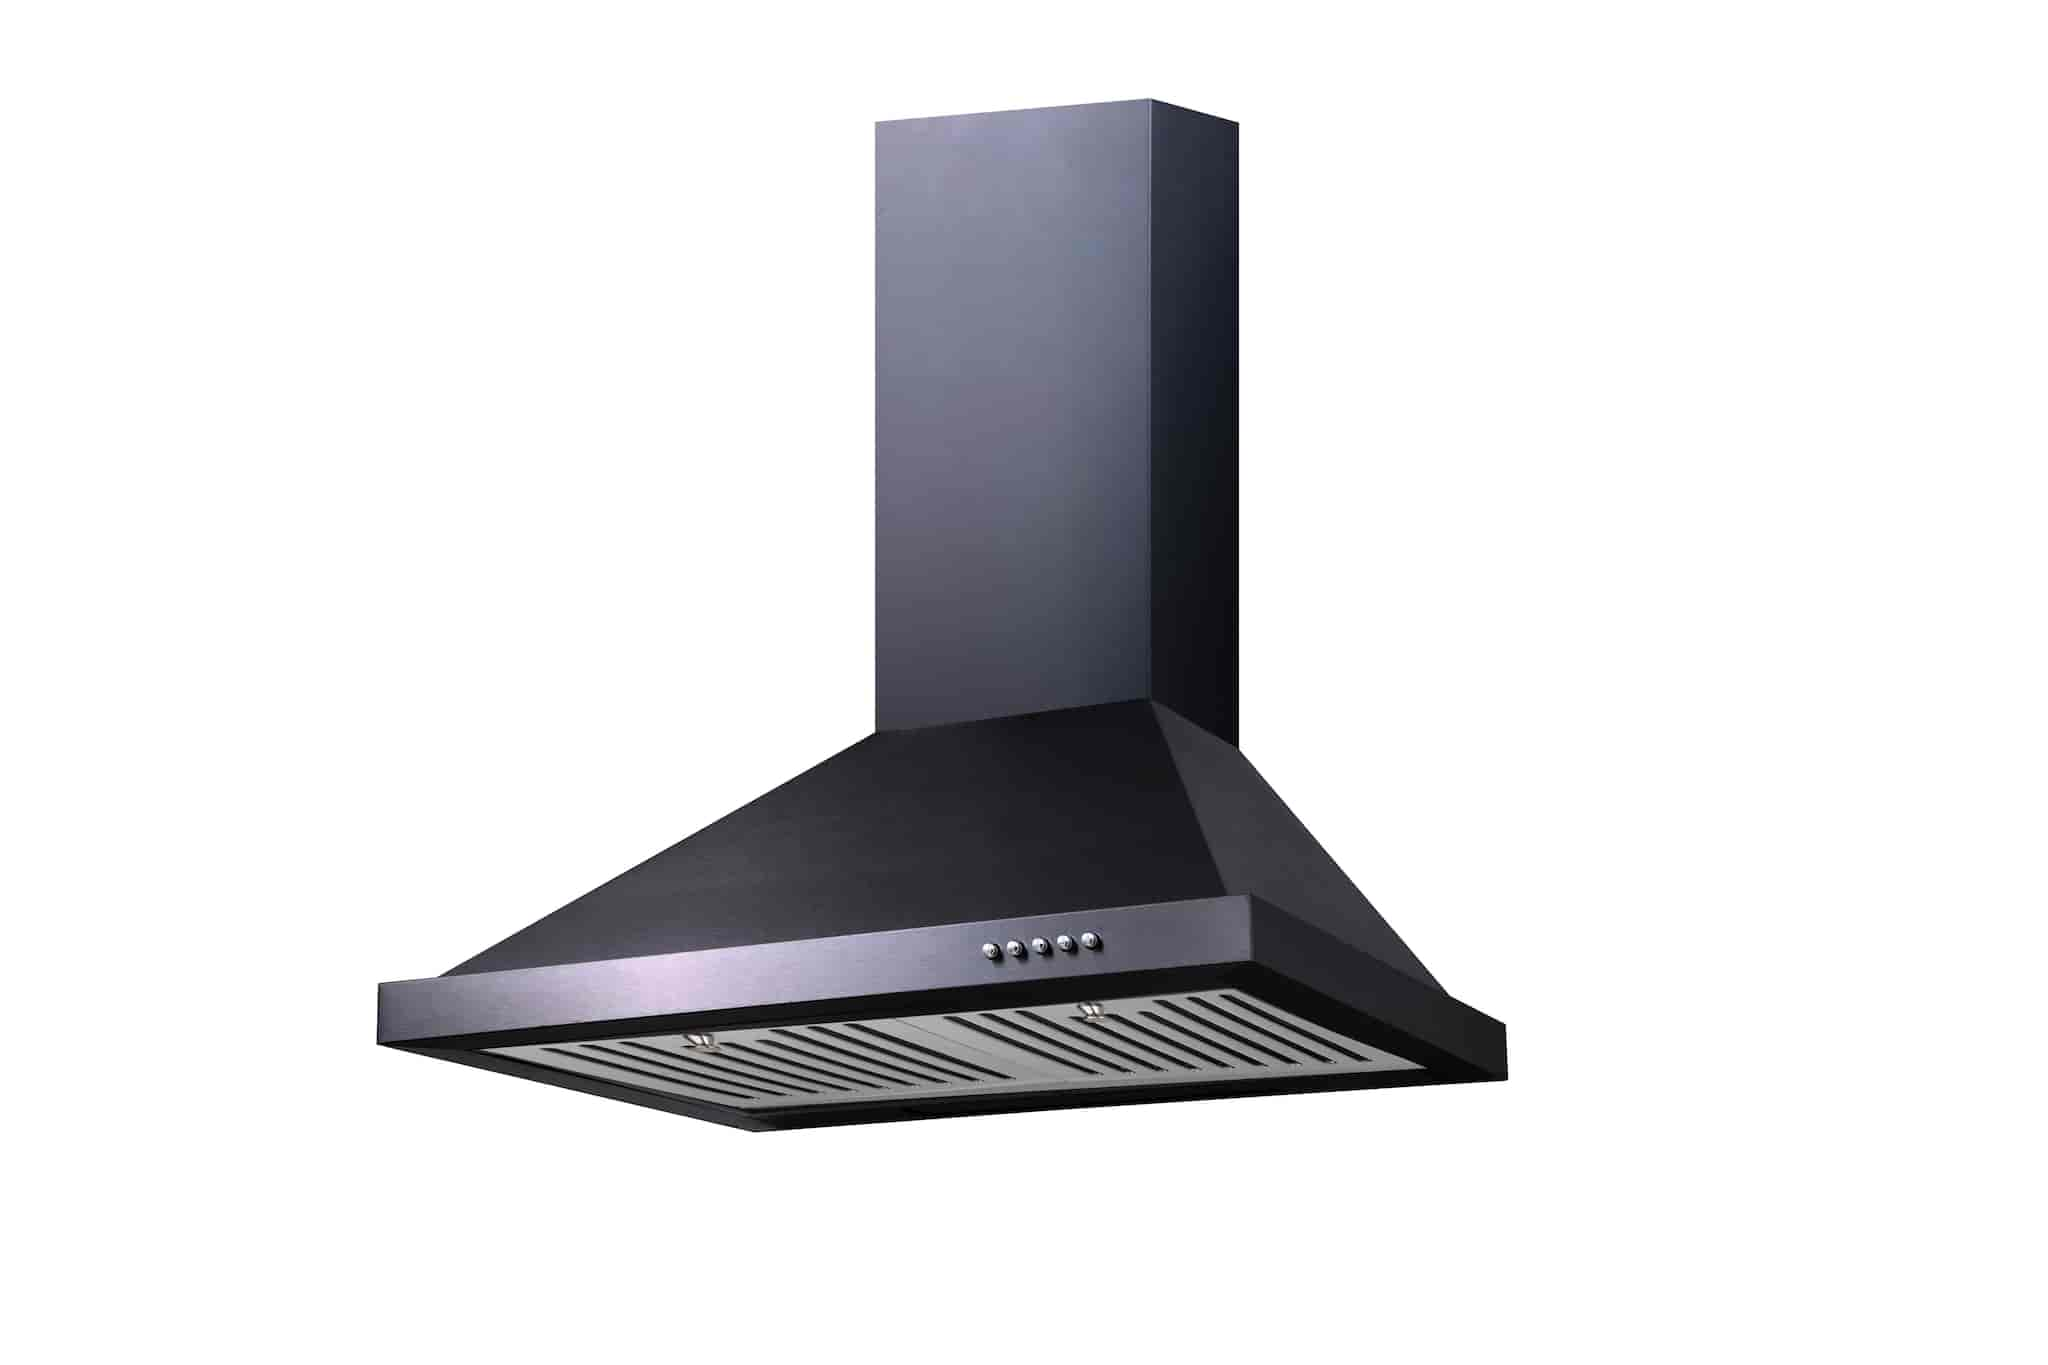 Buy Sleek Nero Om Decorative Electric Chimney, Features, Price ...